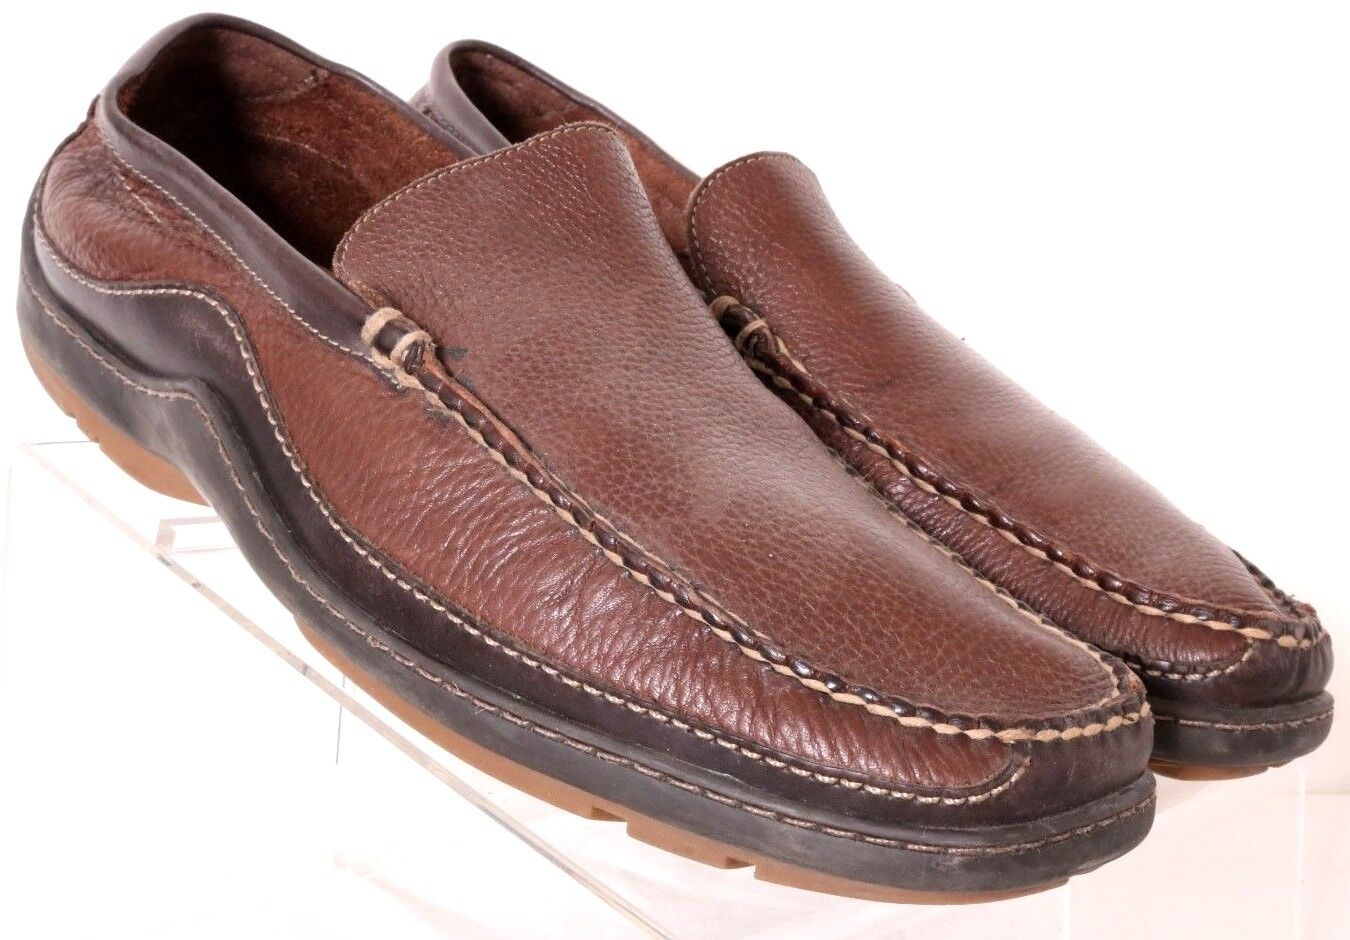 Bass Balmgold Two-Toned Brown Pebbled Leather Moc Driving Loafer Men's US 12M